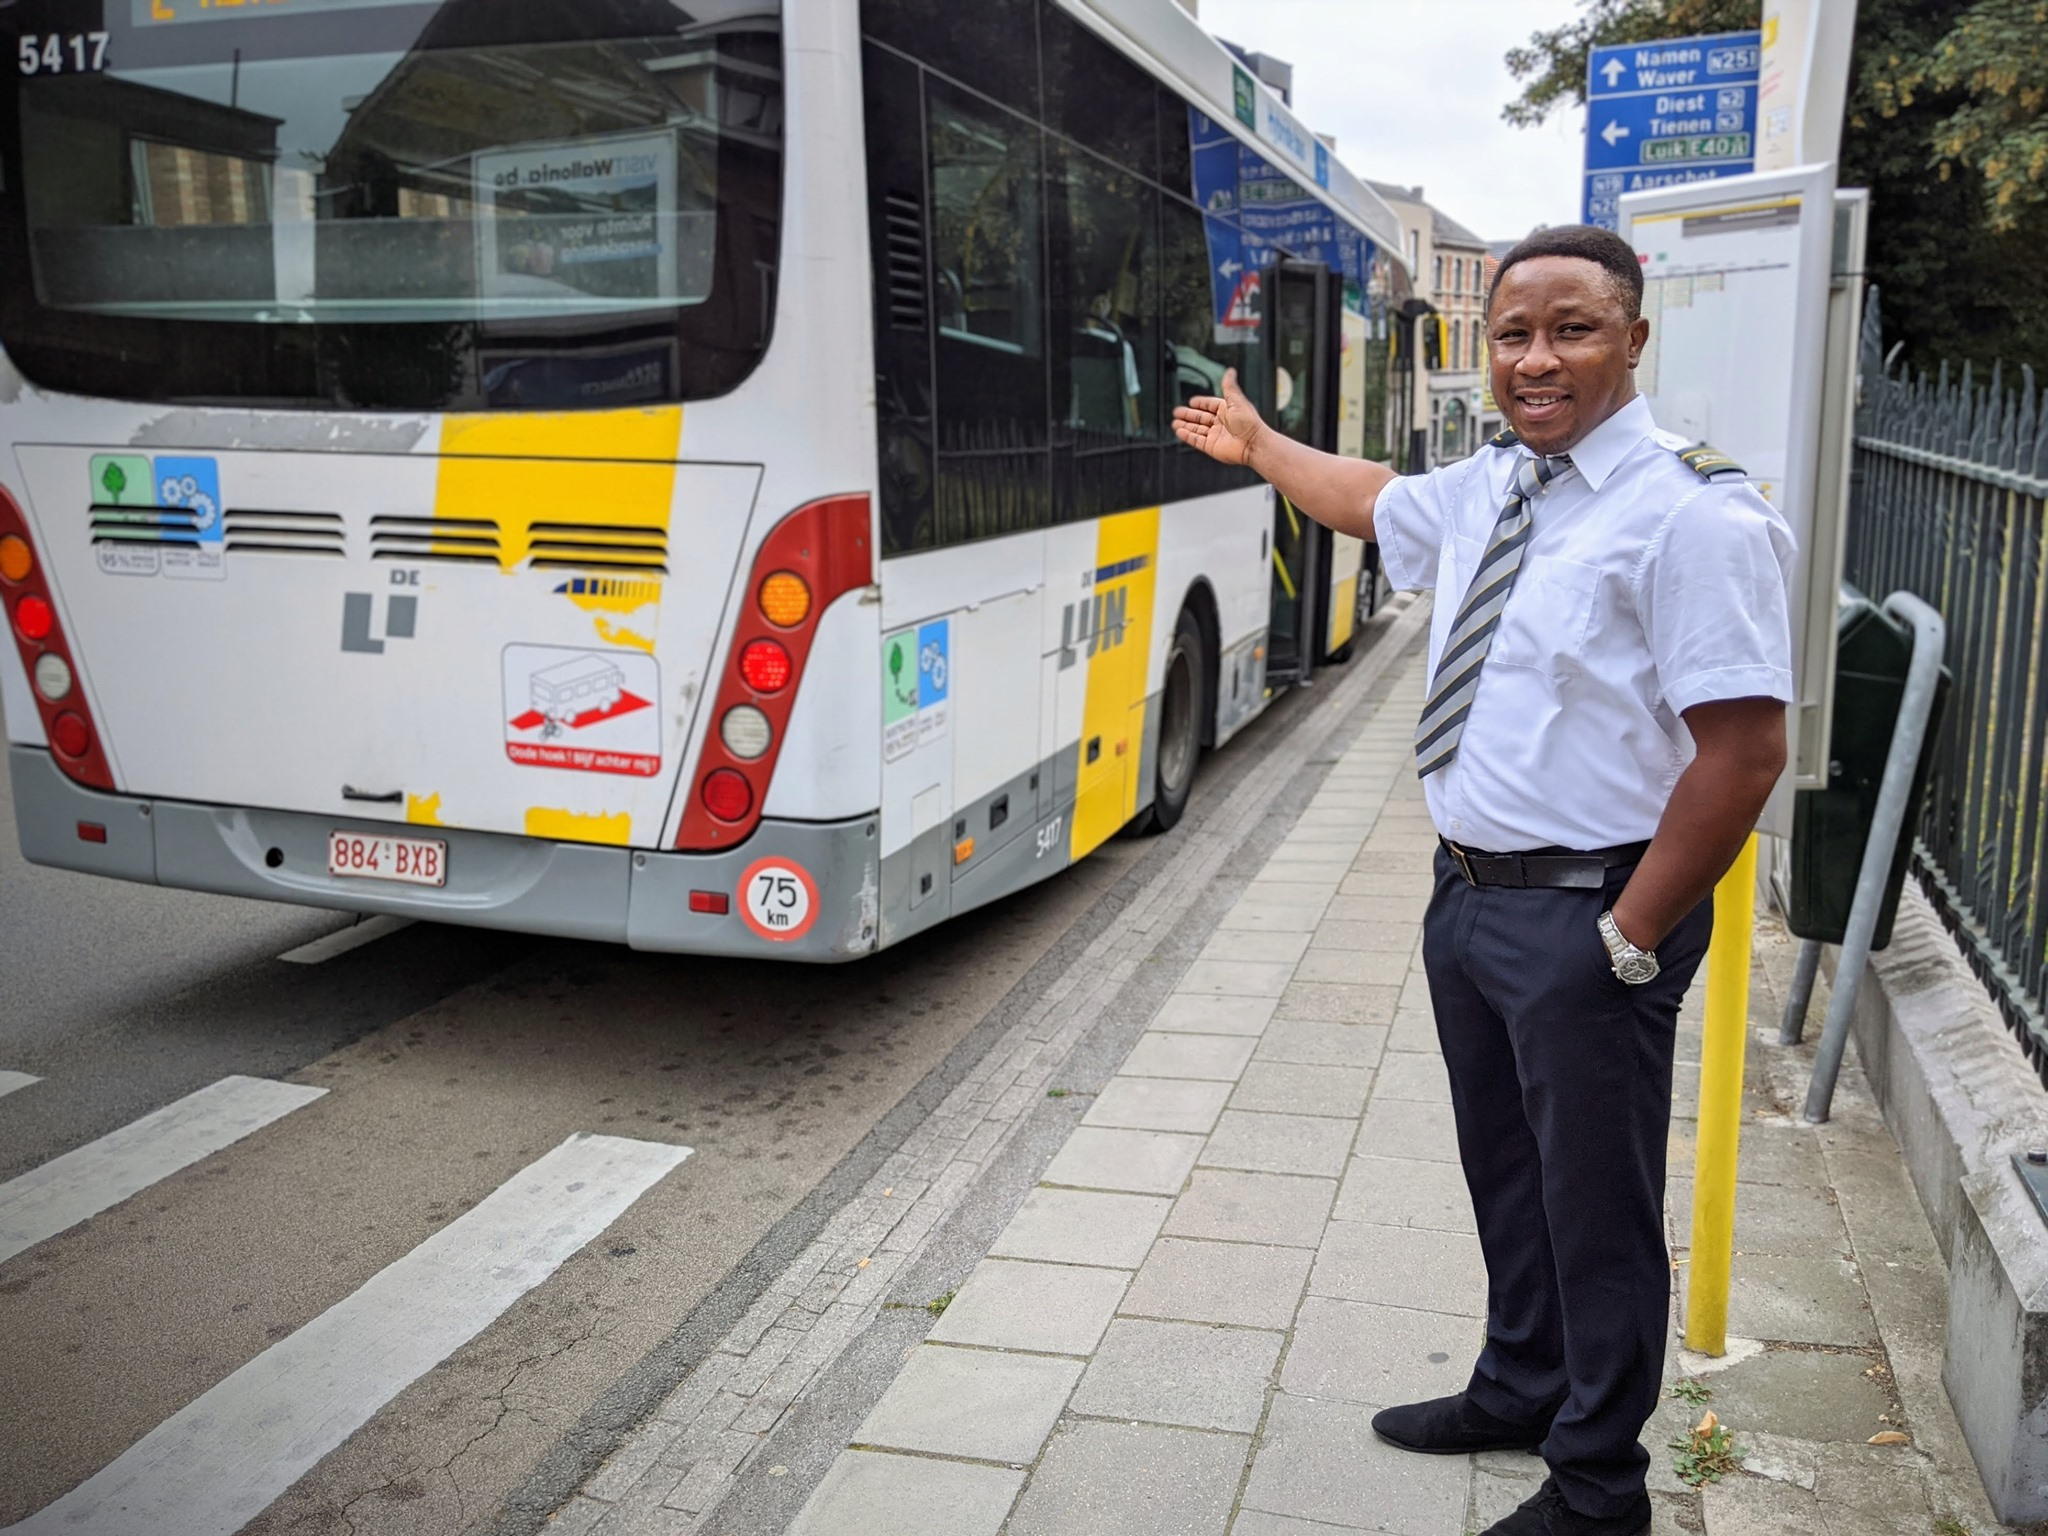 The life of a bus driver in these confusing times